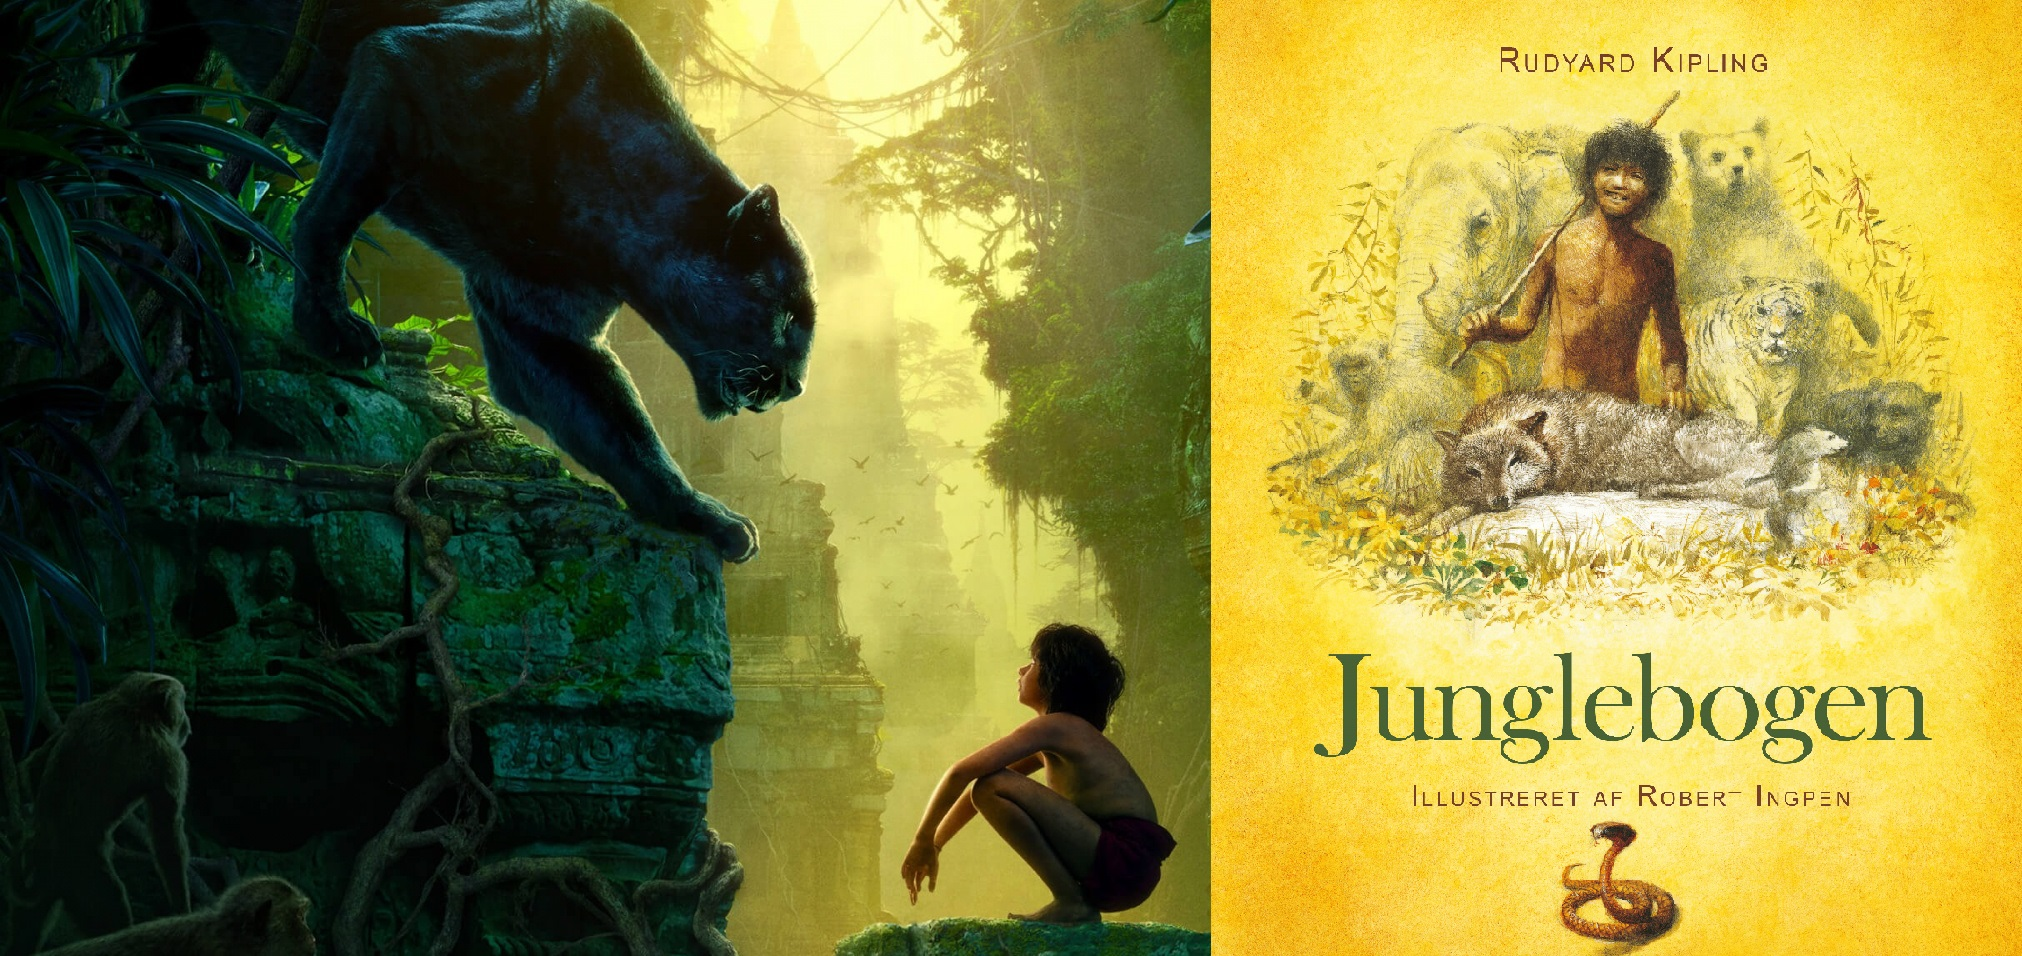 2016_the_jungle_book_movie_poster-1600x1200